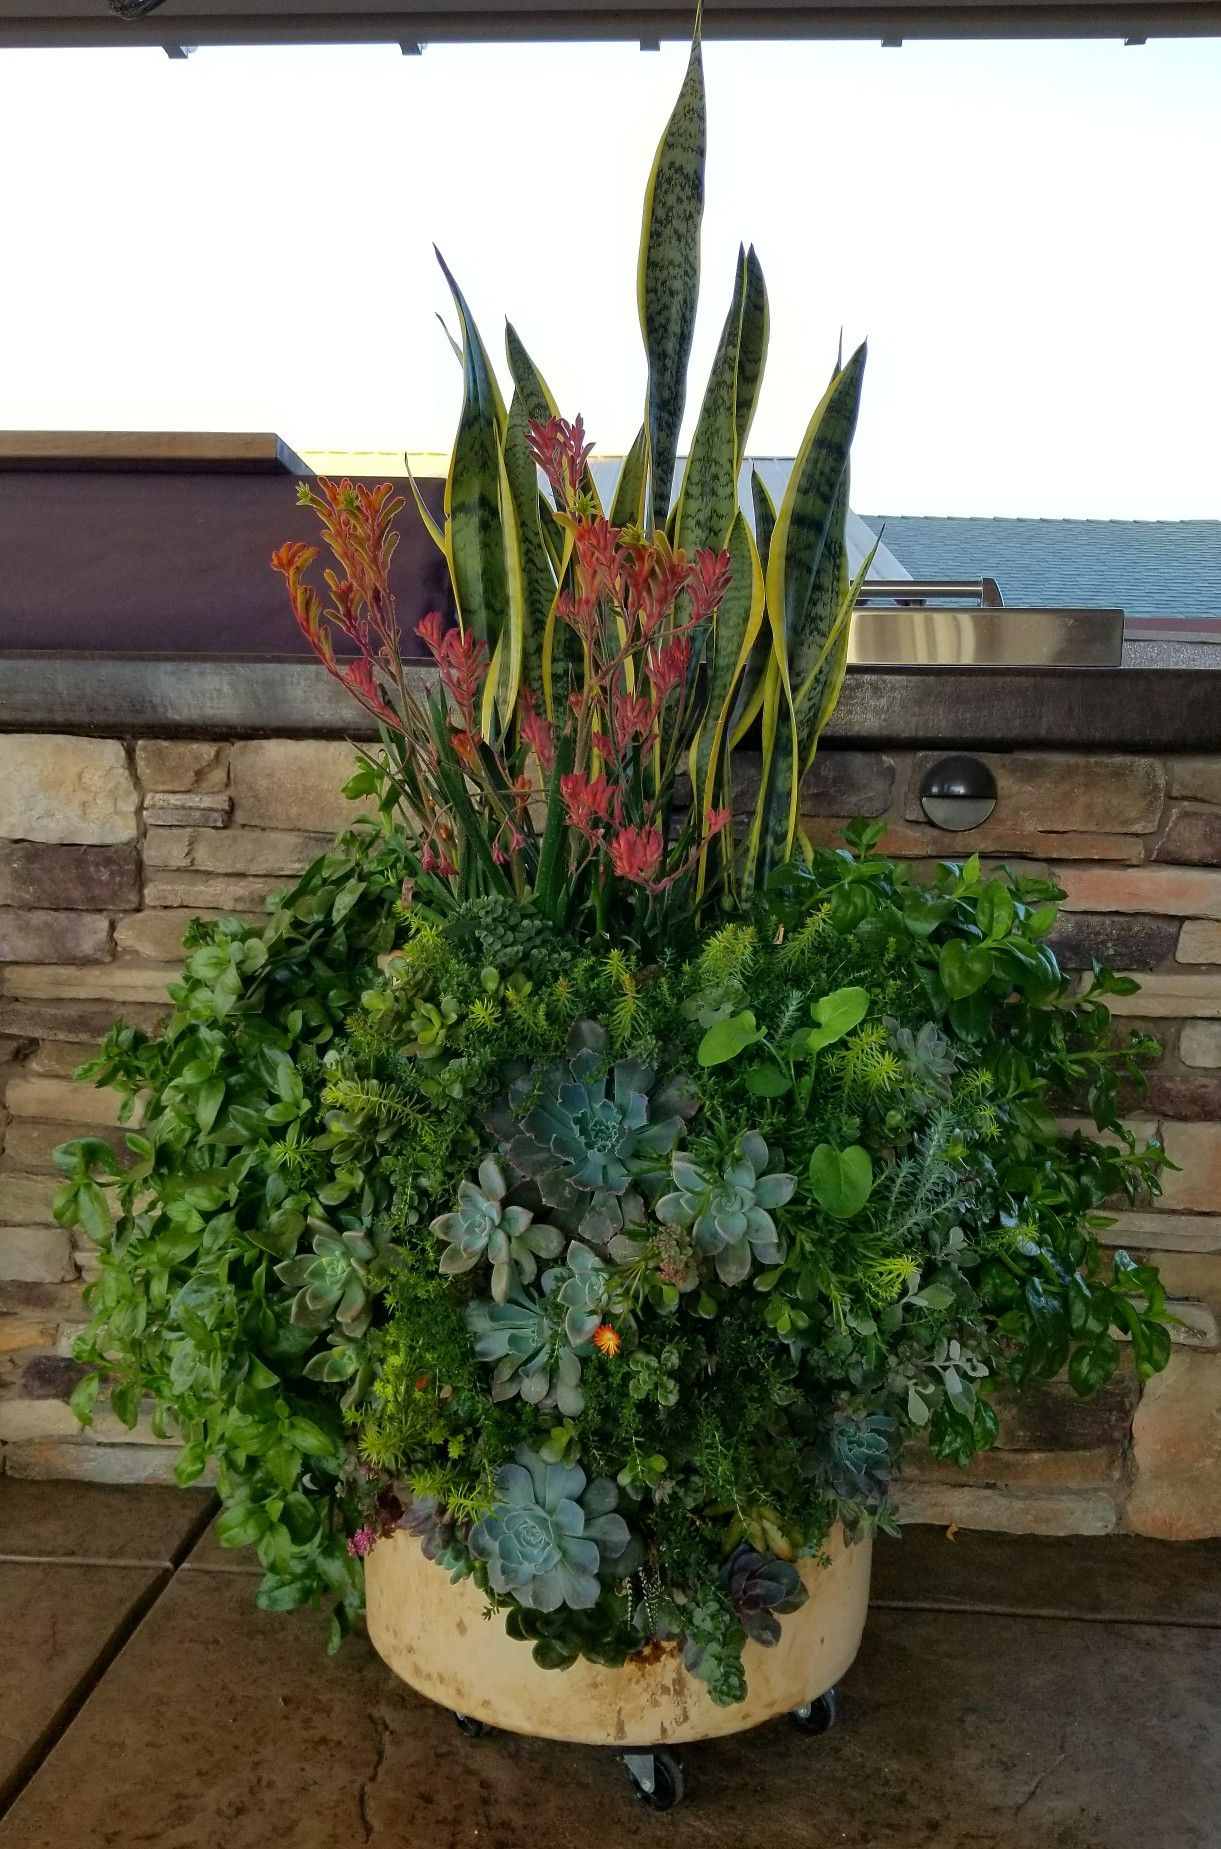 Succulent Planter With Many Different Types Of Plants And Succulents.